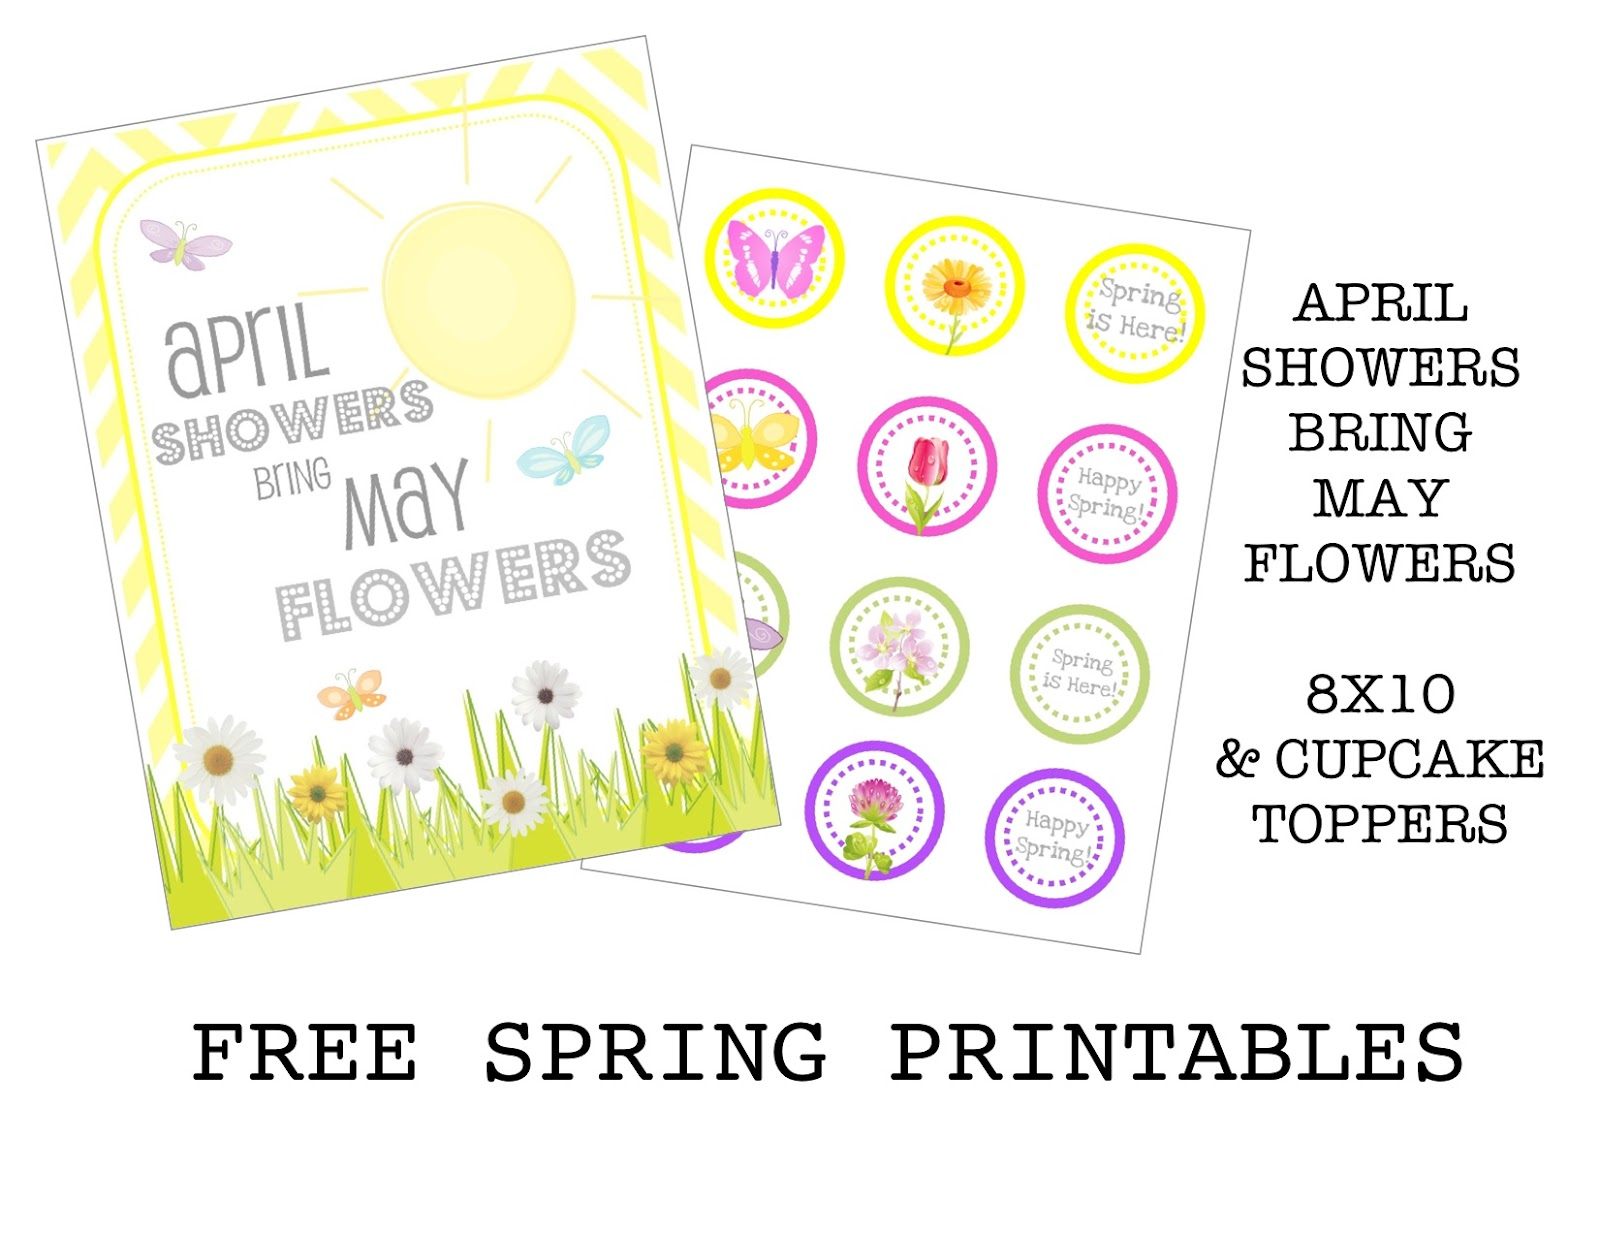 Free printable april showers bring may flowers printable creative i love spring free and printables so here is a free printable from my april showers bring may flowers party mightylinksfo